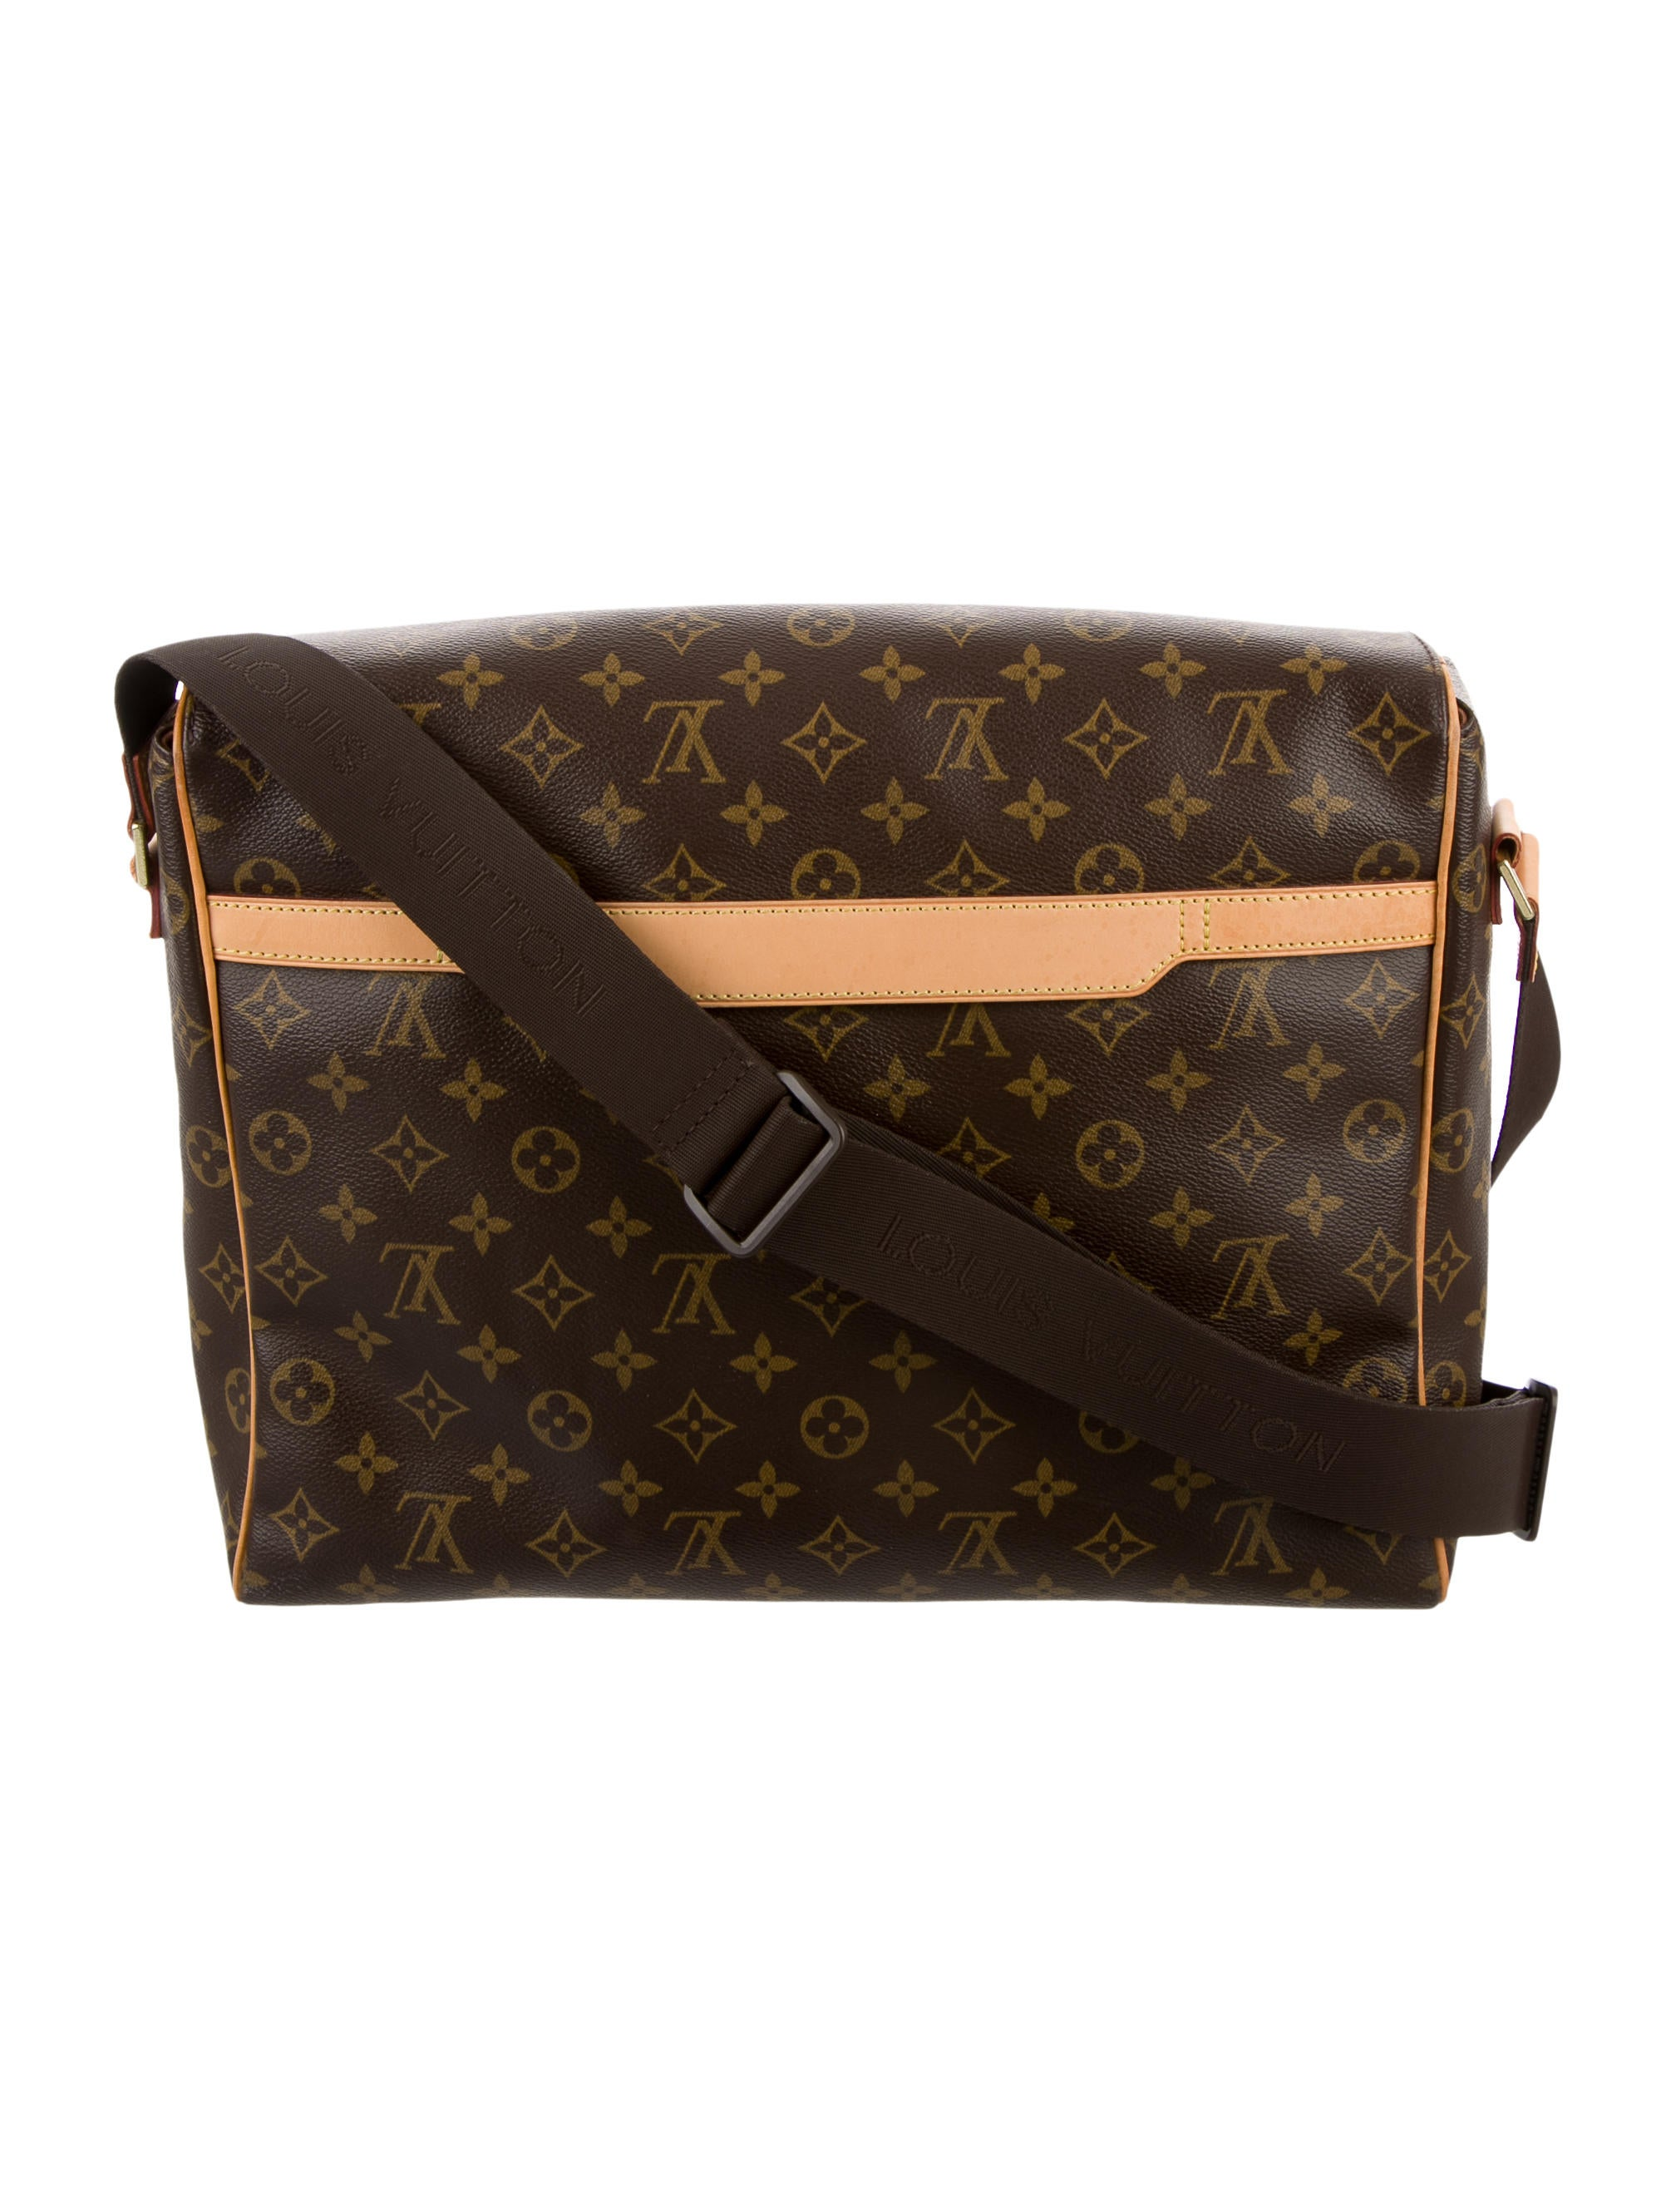 Awesome Vevers, A Veteran Of Louis Vuitton, Mulberry And Loewe  Vevers Said He Was Also Inspired By The Women Who Collect And Wear Vintage Coach Purses I Myself Have Several Scored At Flea Markets The New Handbags Seem To Have A